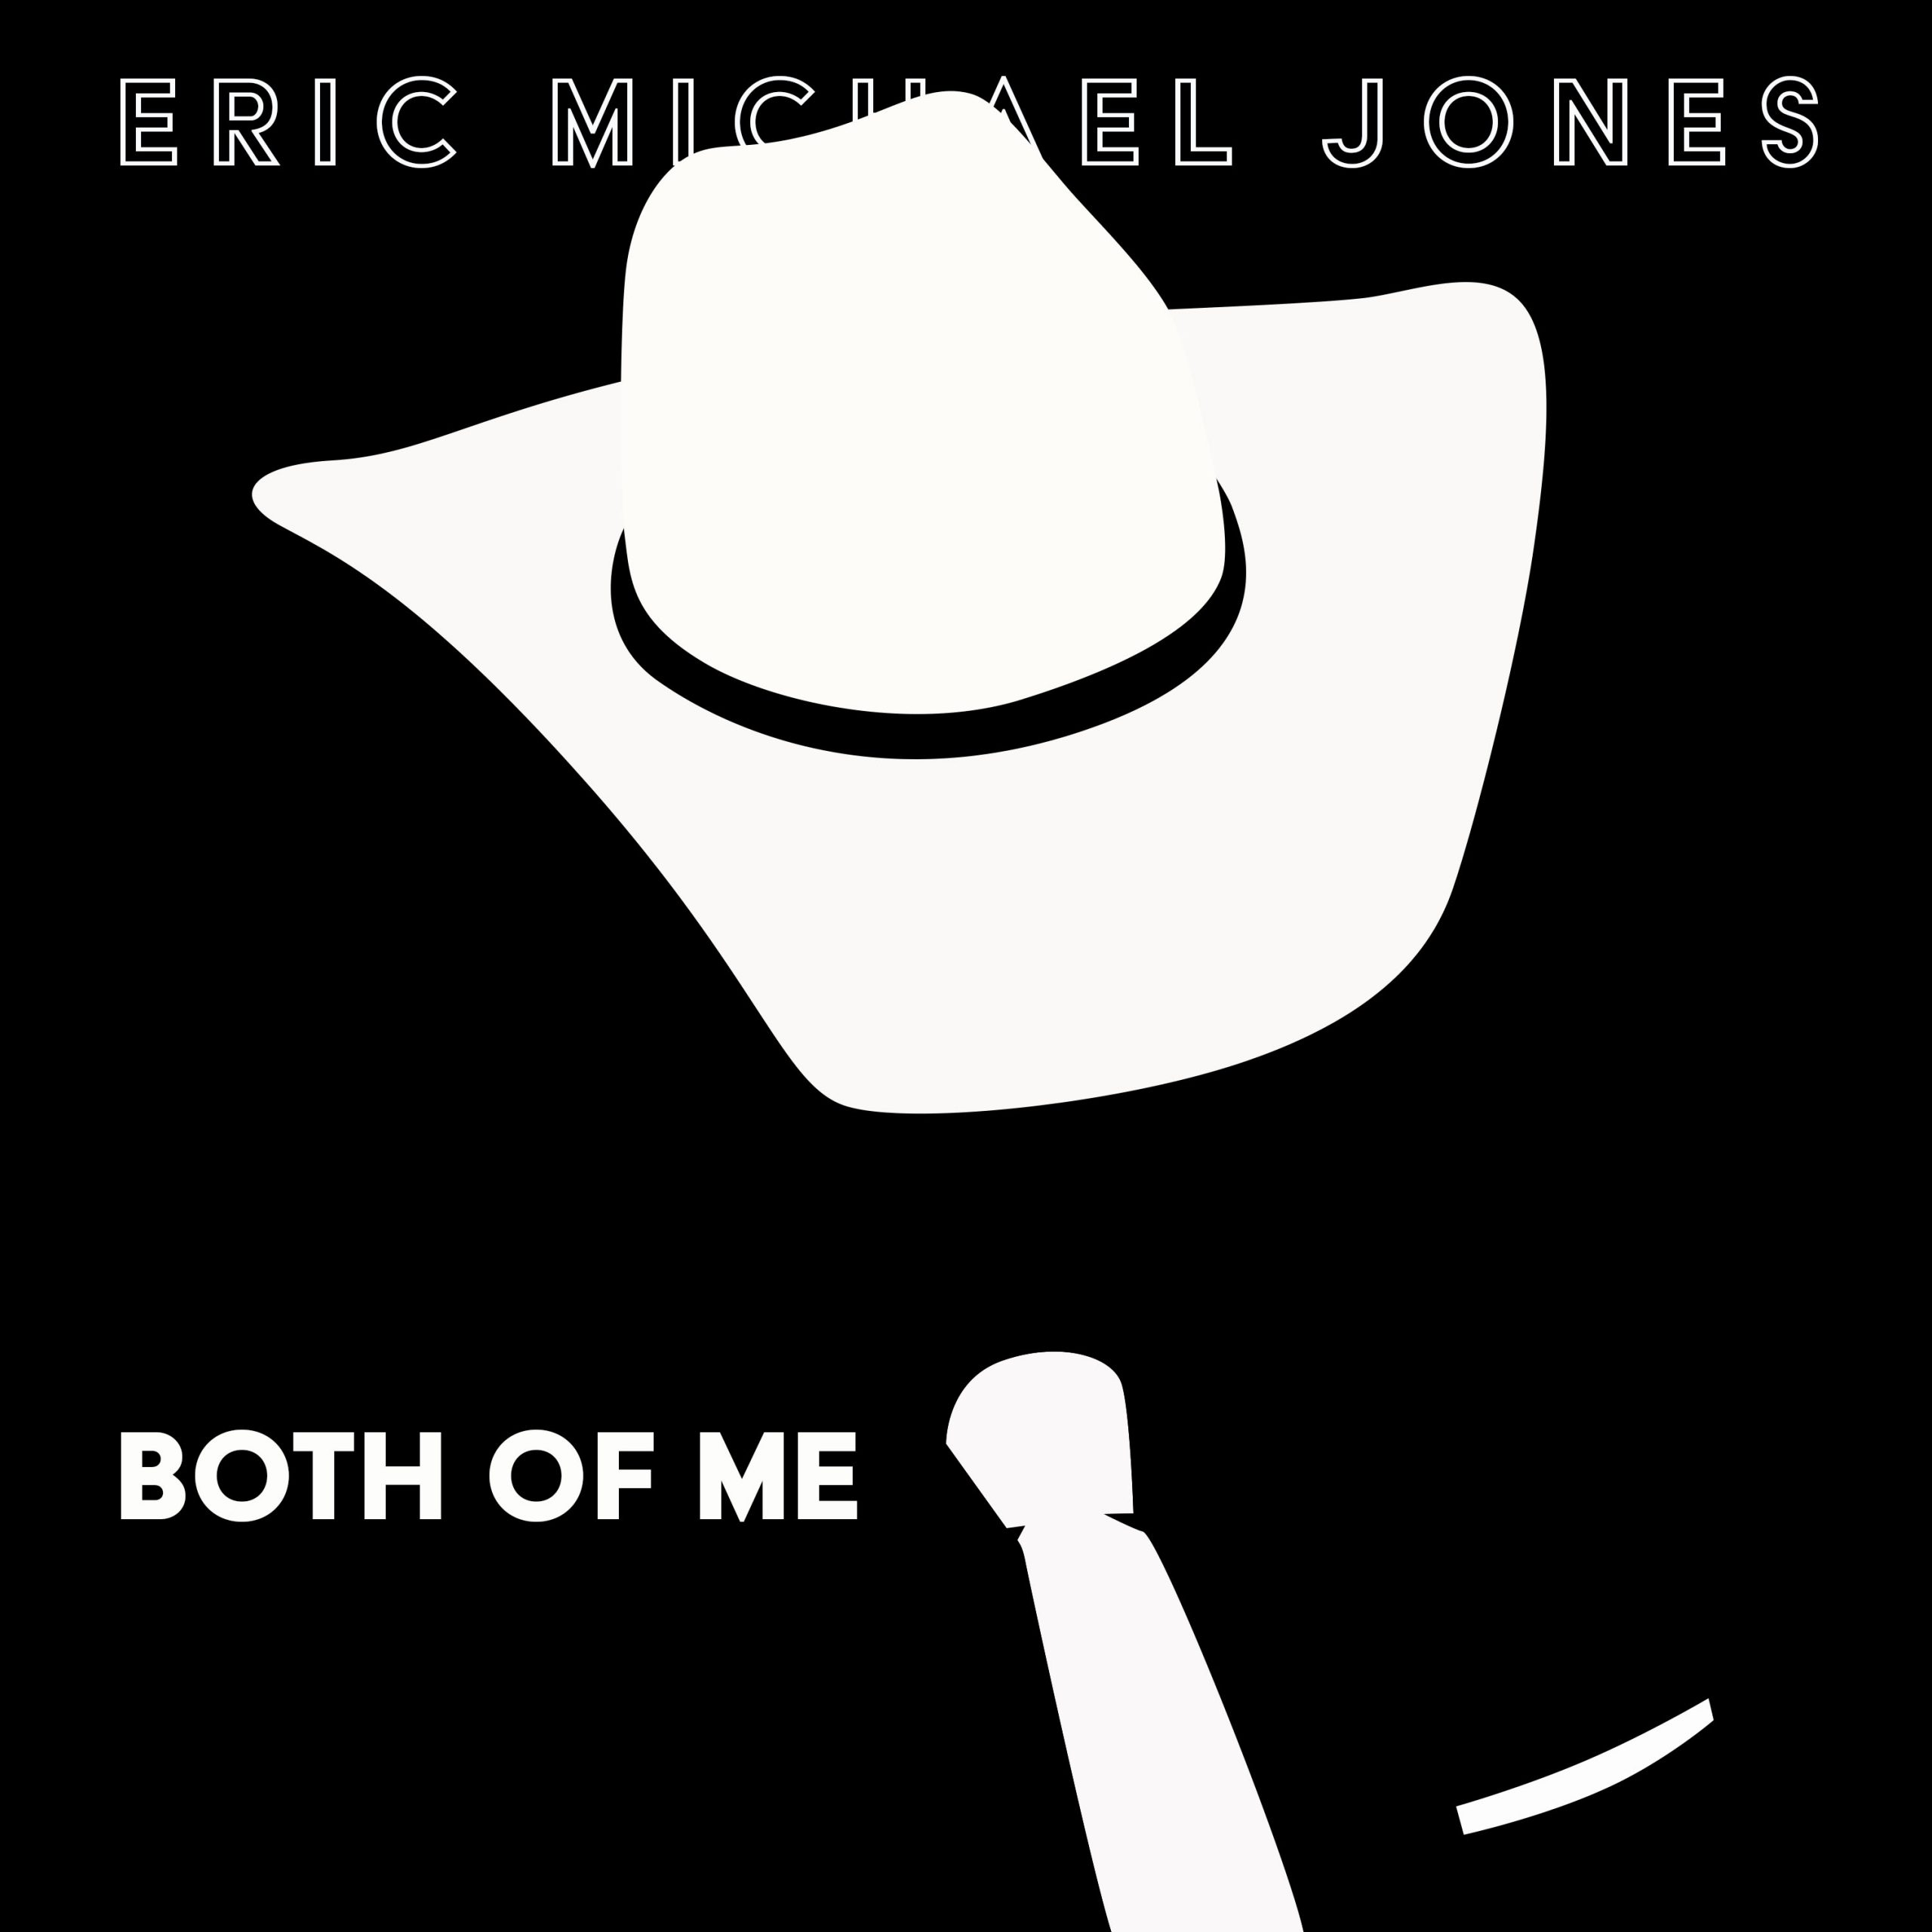 Both Of Me by Eric Michael Jones